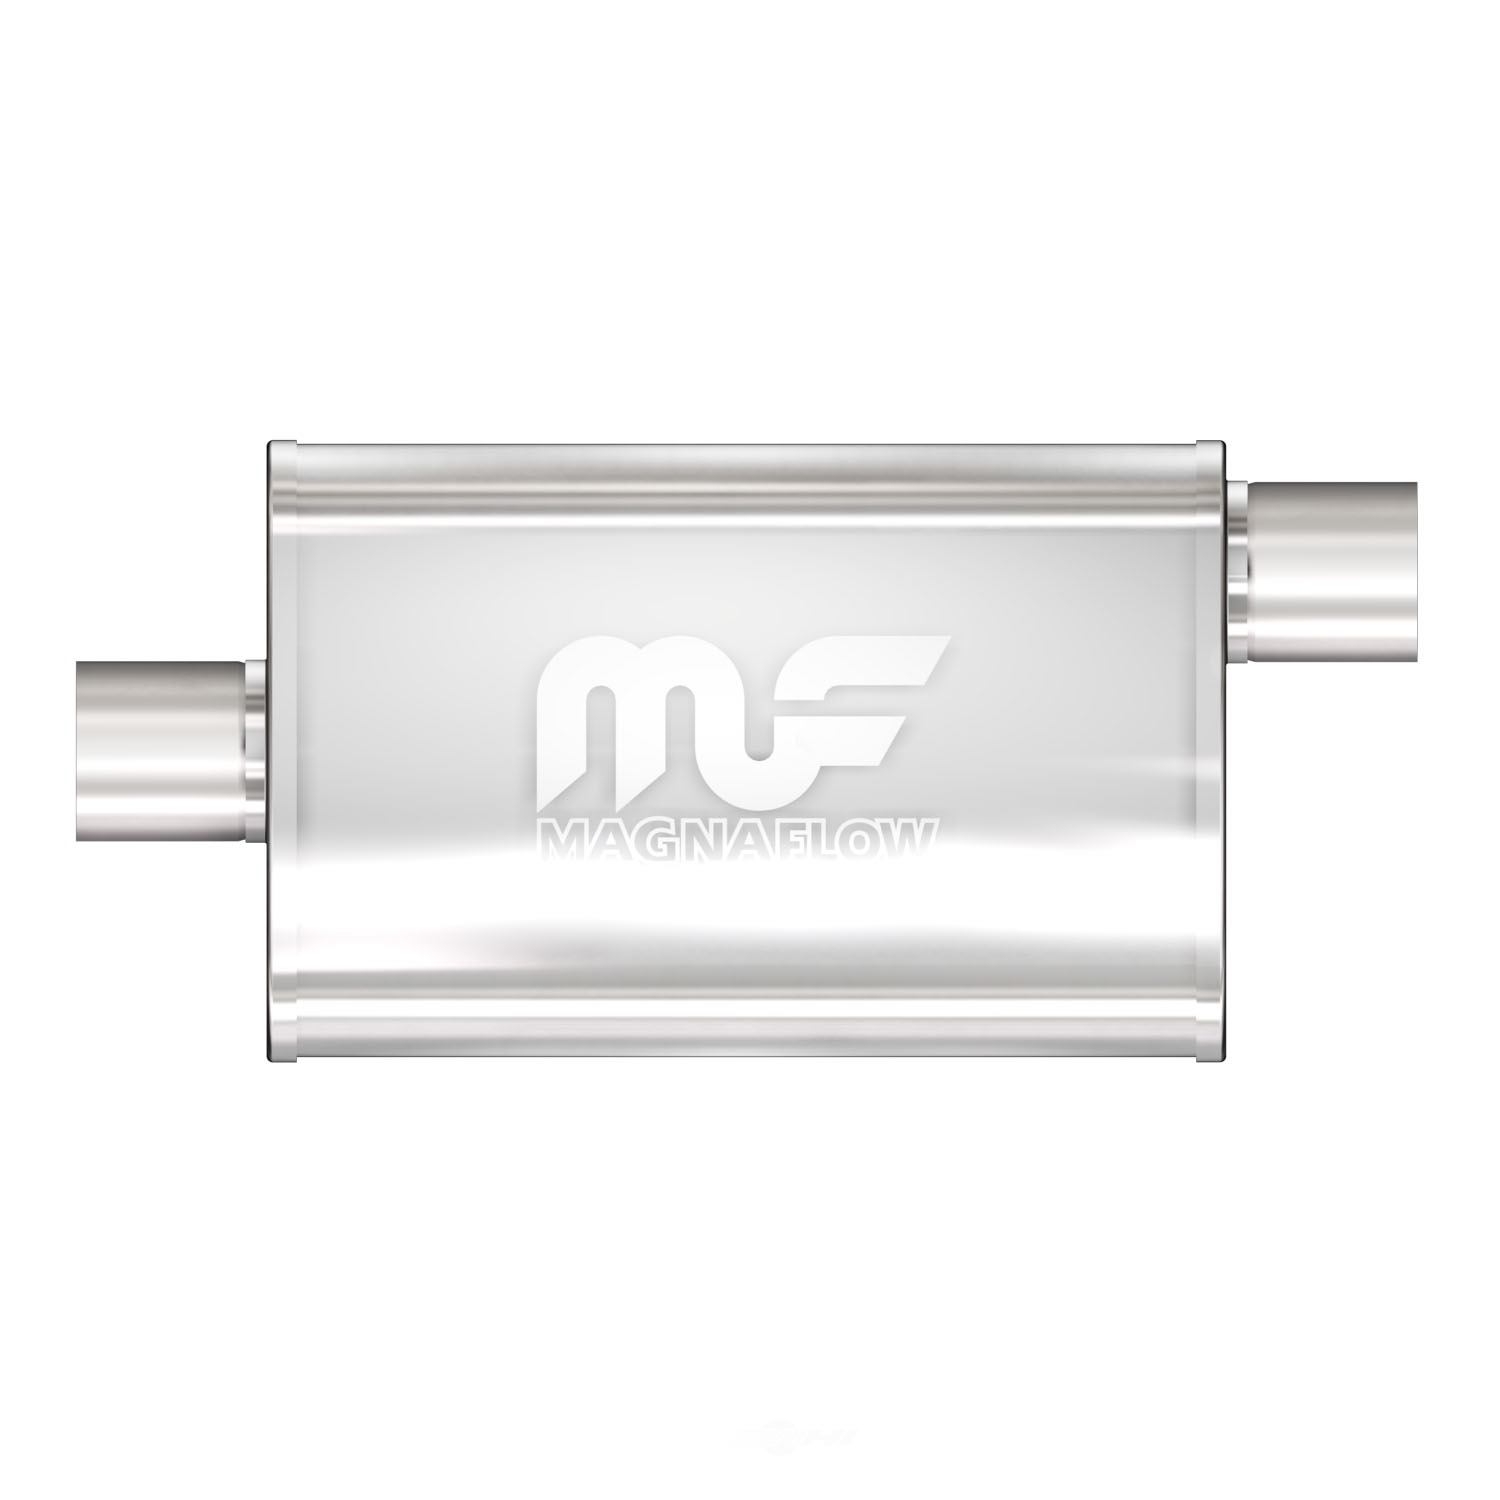 MAGNAFLOW PERF. EXHAUST - Satin Finish Oval Exhaust Muffler - MGF 11226